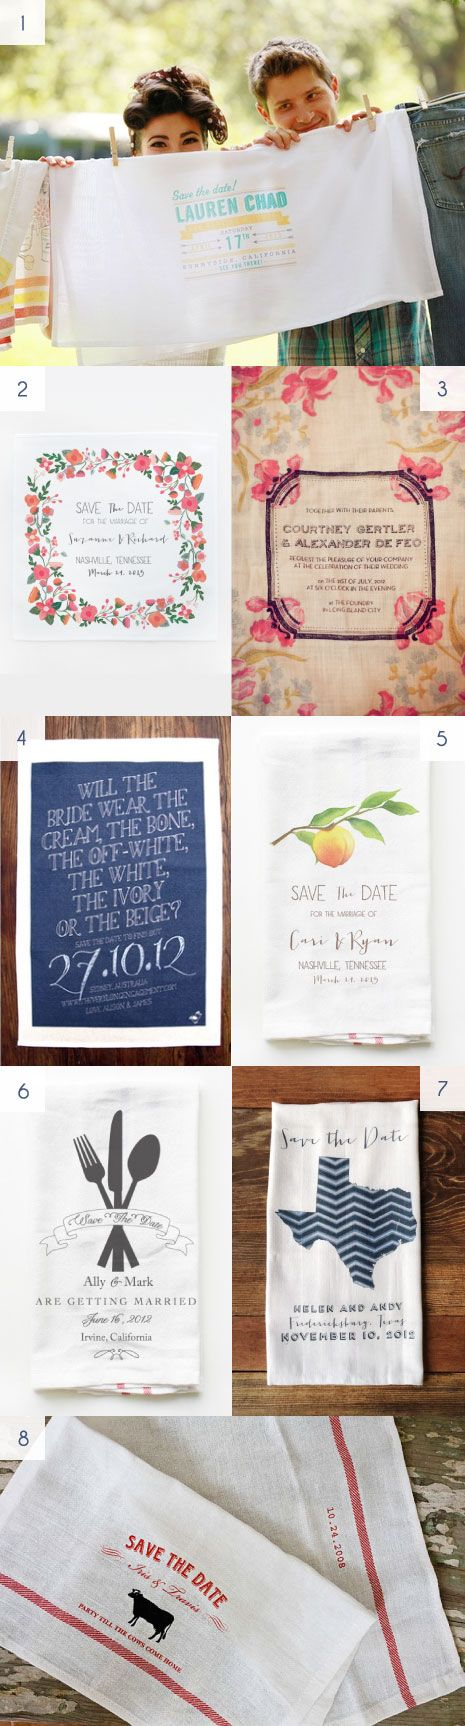 661 best Paper/Print images on Pinterest | Invitations, Typography ...